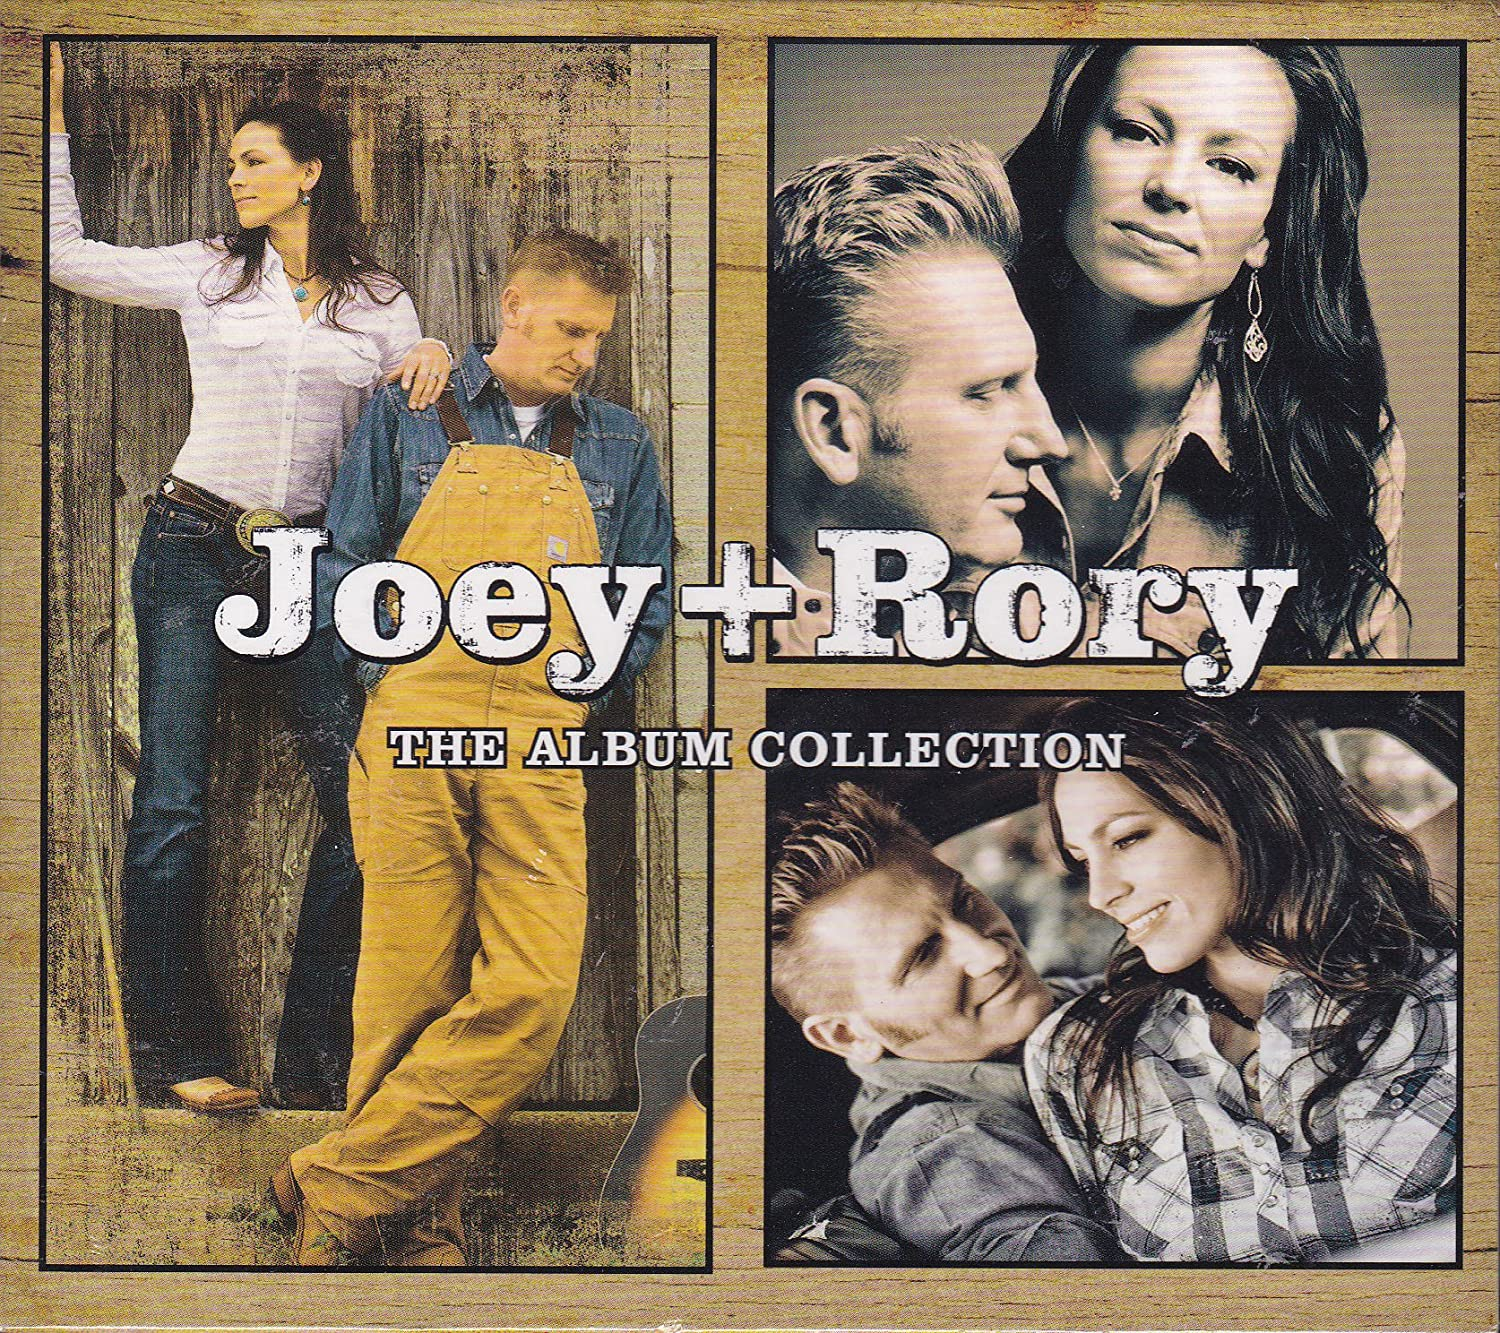 Joey & Rory - Joey + Rory: The Album Collection - Amazon.com Music